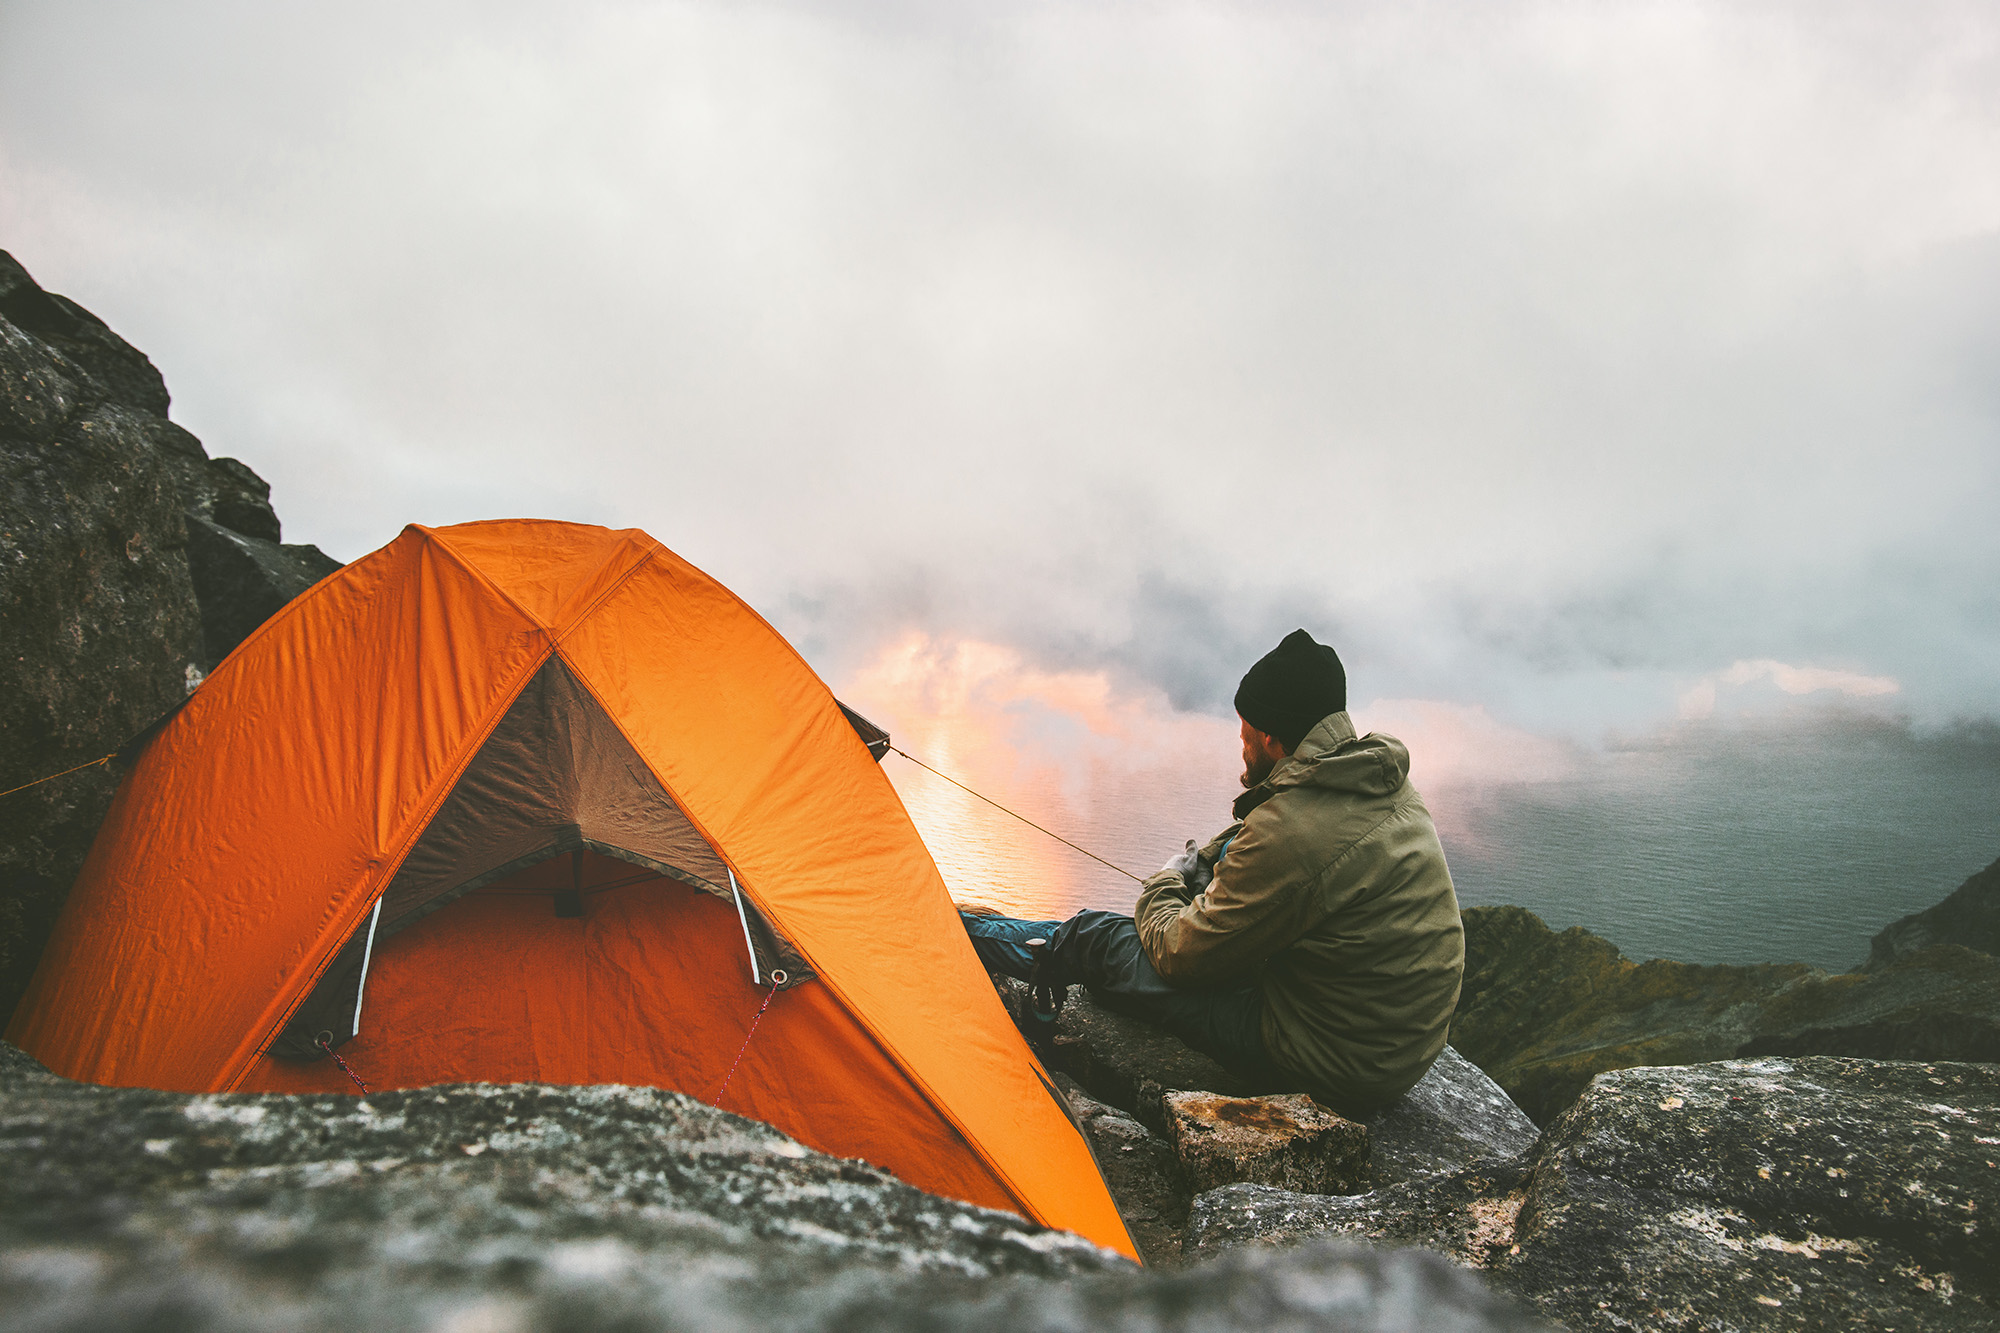 6 things to know before experiencing wilderness camping